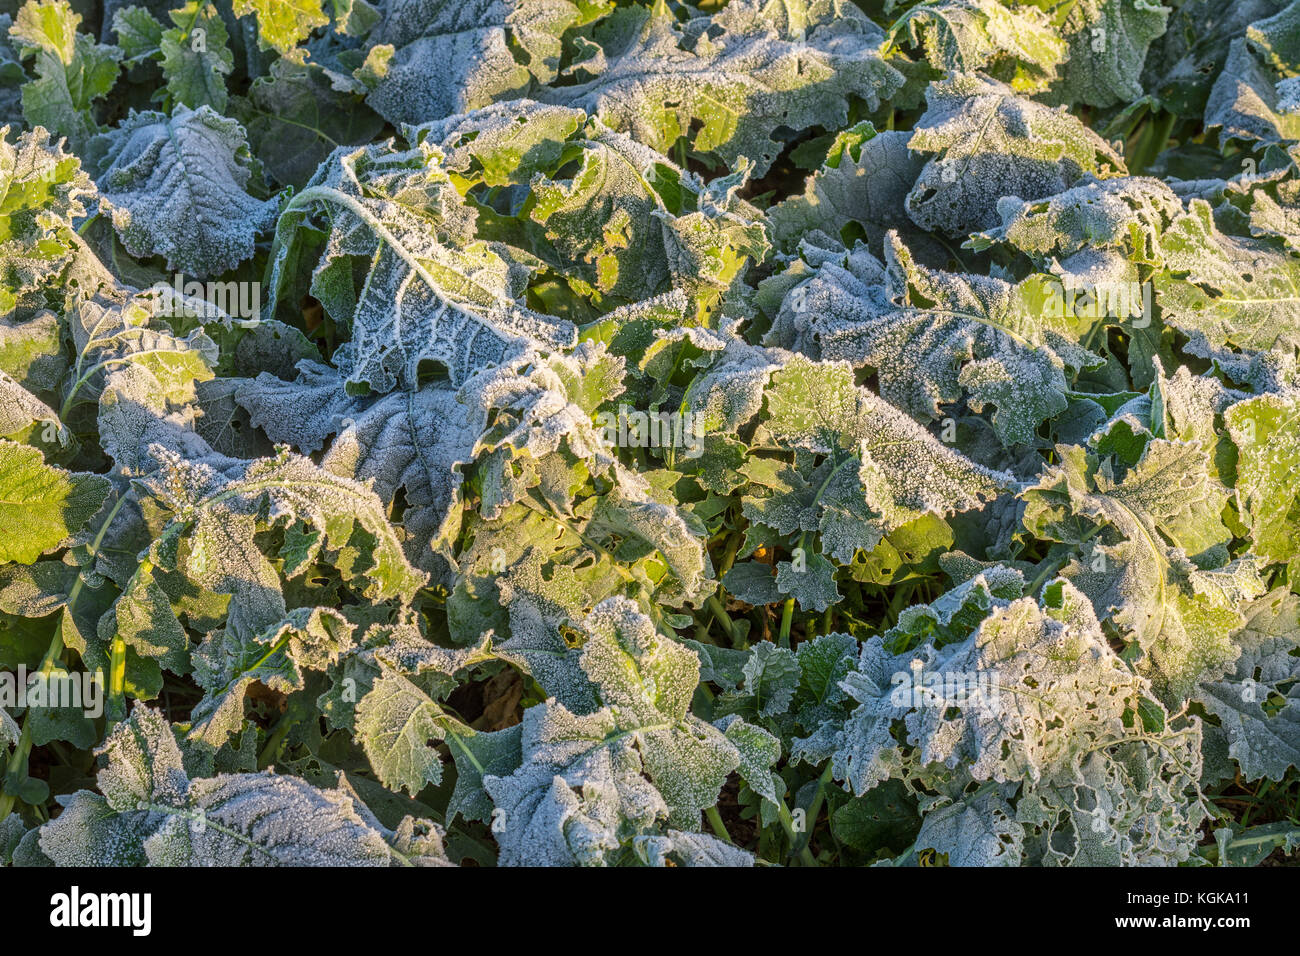 Morning frost on leaves of young Canola / Oilseed / Colza plants - France. - Stock Image